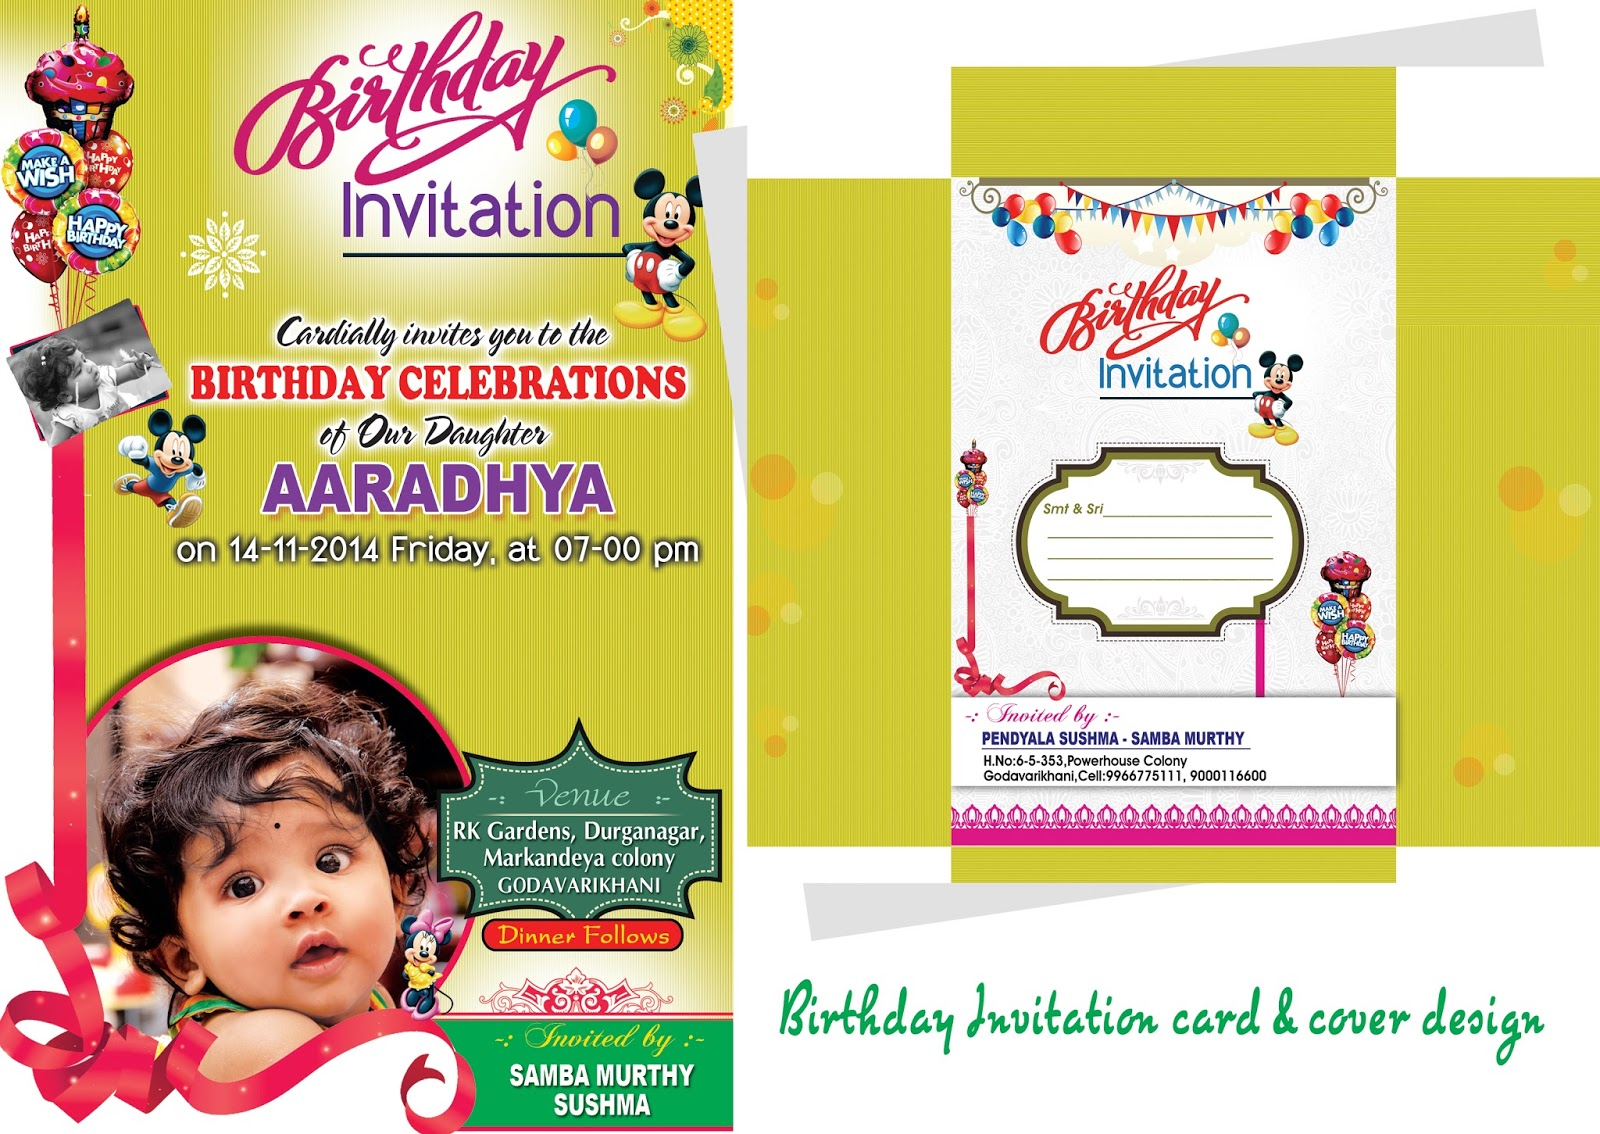 Birthday invitation card templates free download morenpulsar birthday invitation filmwisefo